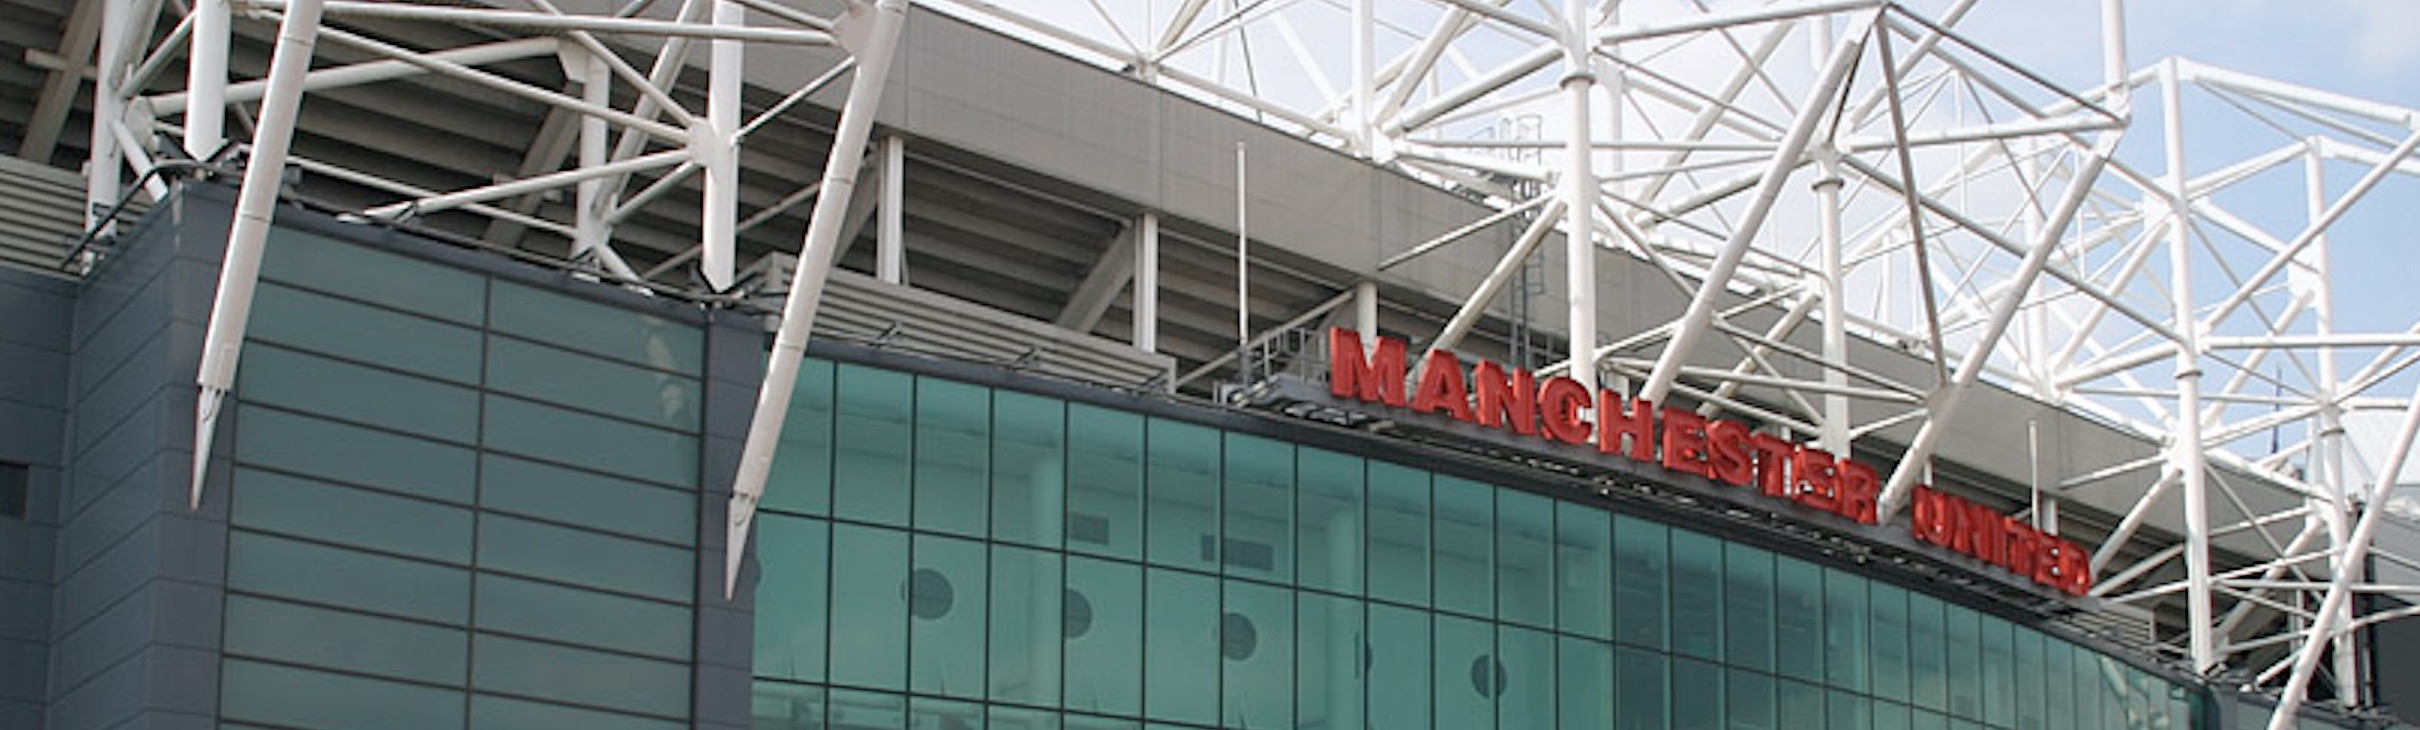 Man United V Cardiff - 1 Night Stay